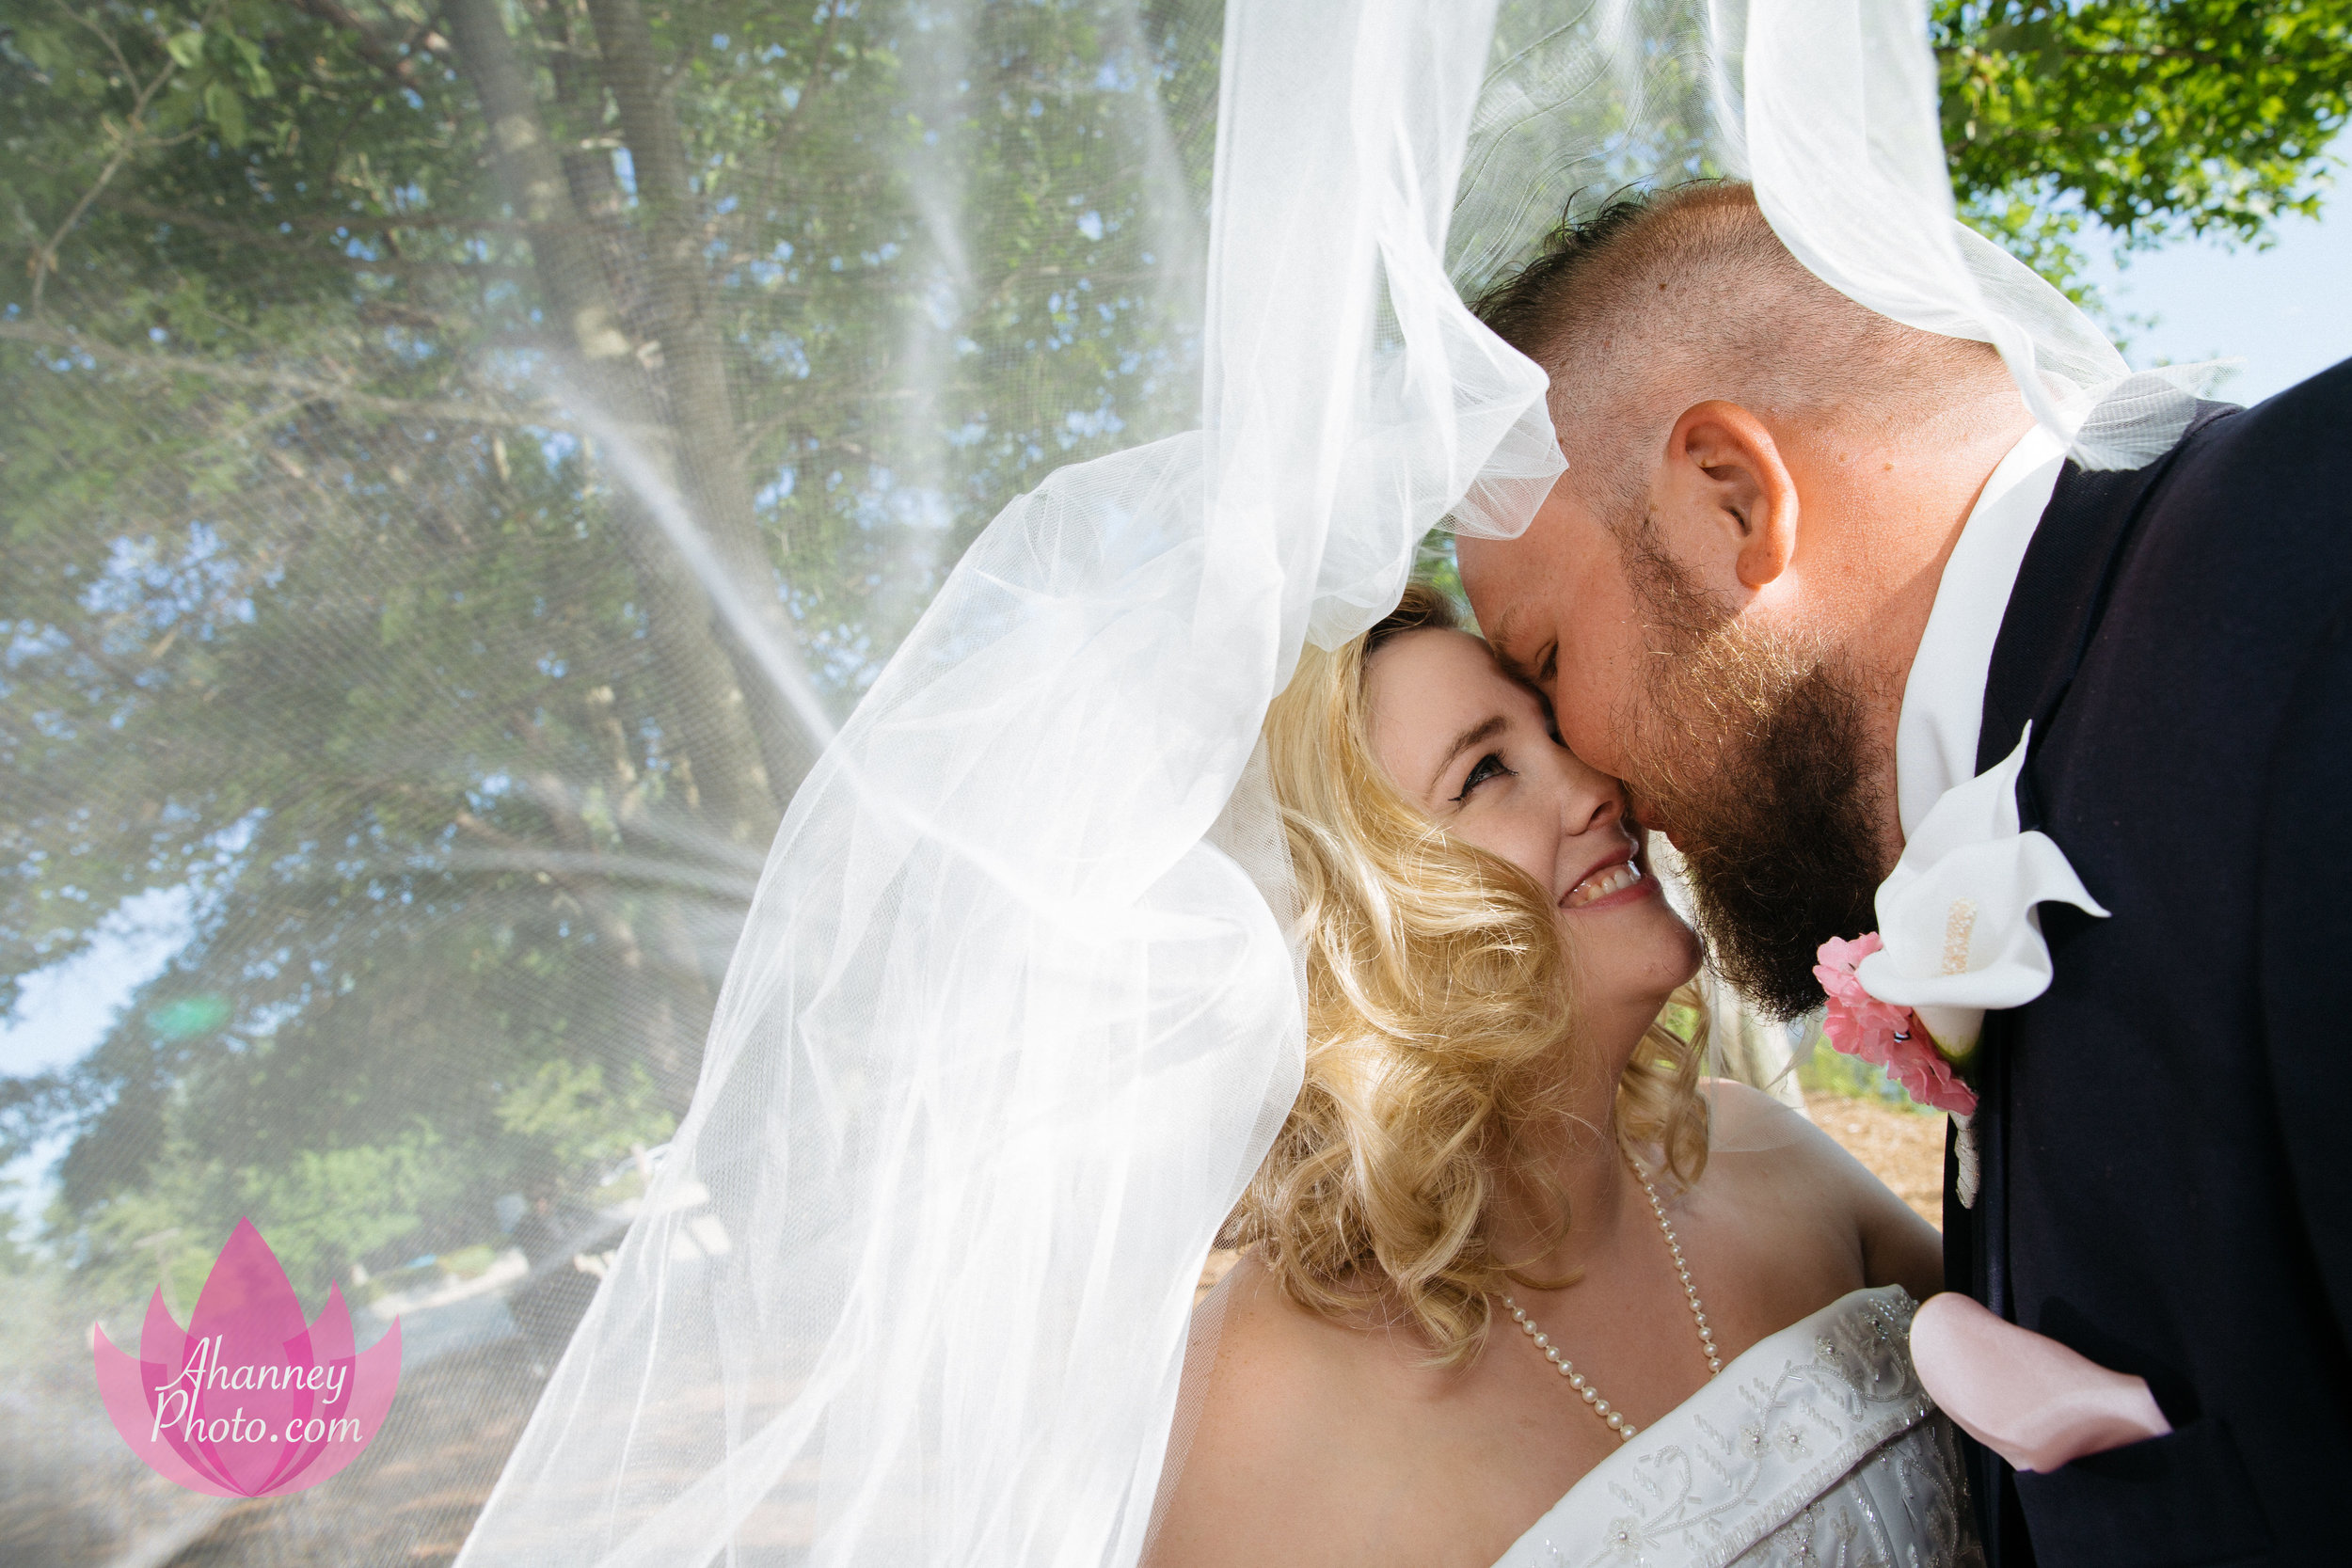 Wedding Photography of Bride and Groom in Love under Vail in Medford New Jersey by Anastasia Hanney Photography AHanneyPhoto